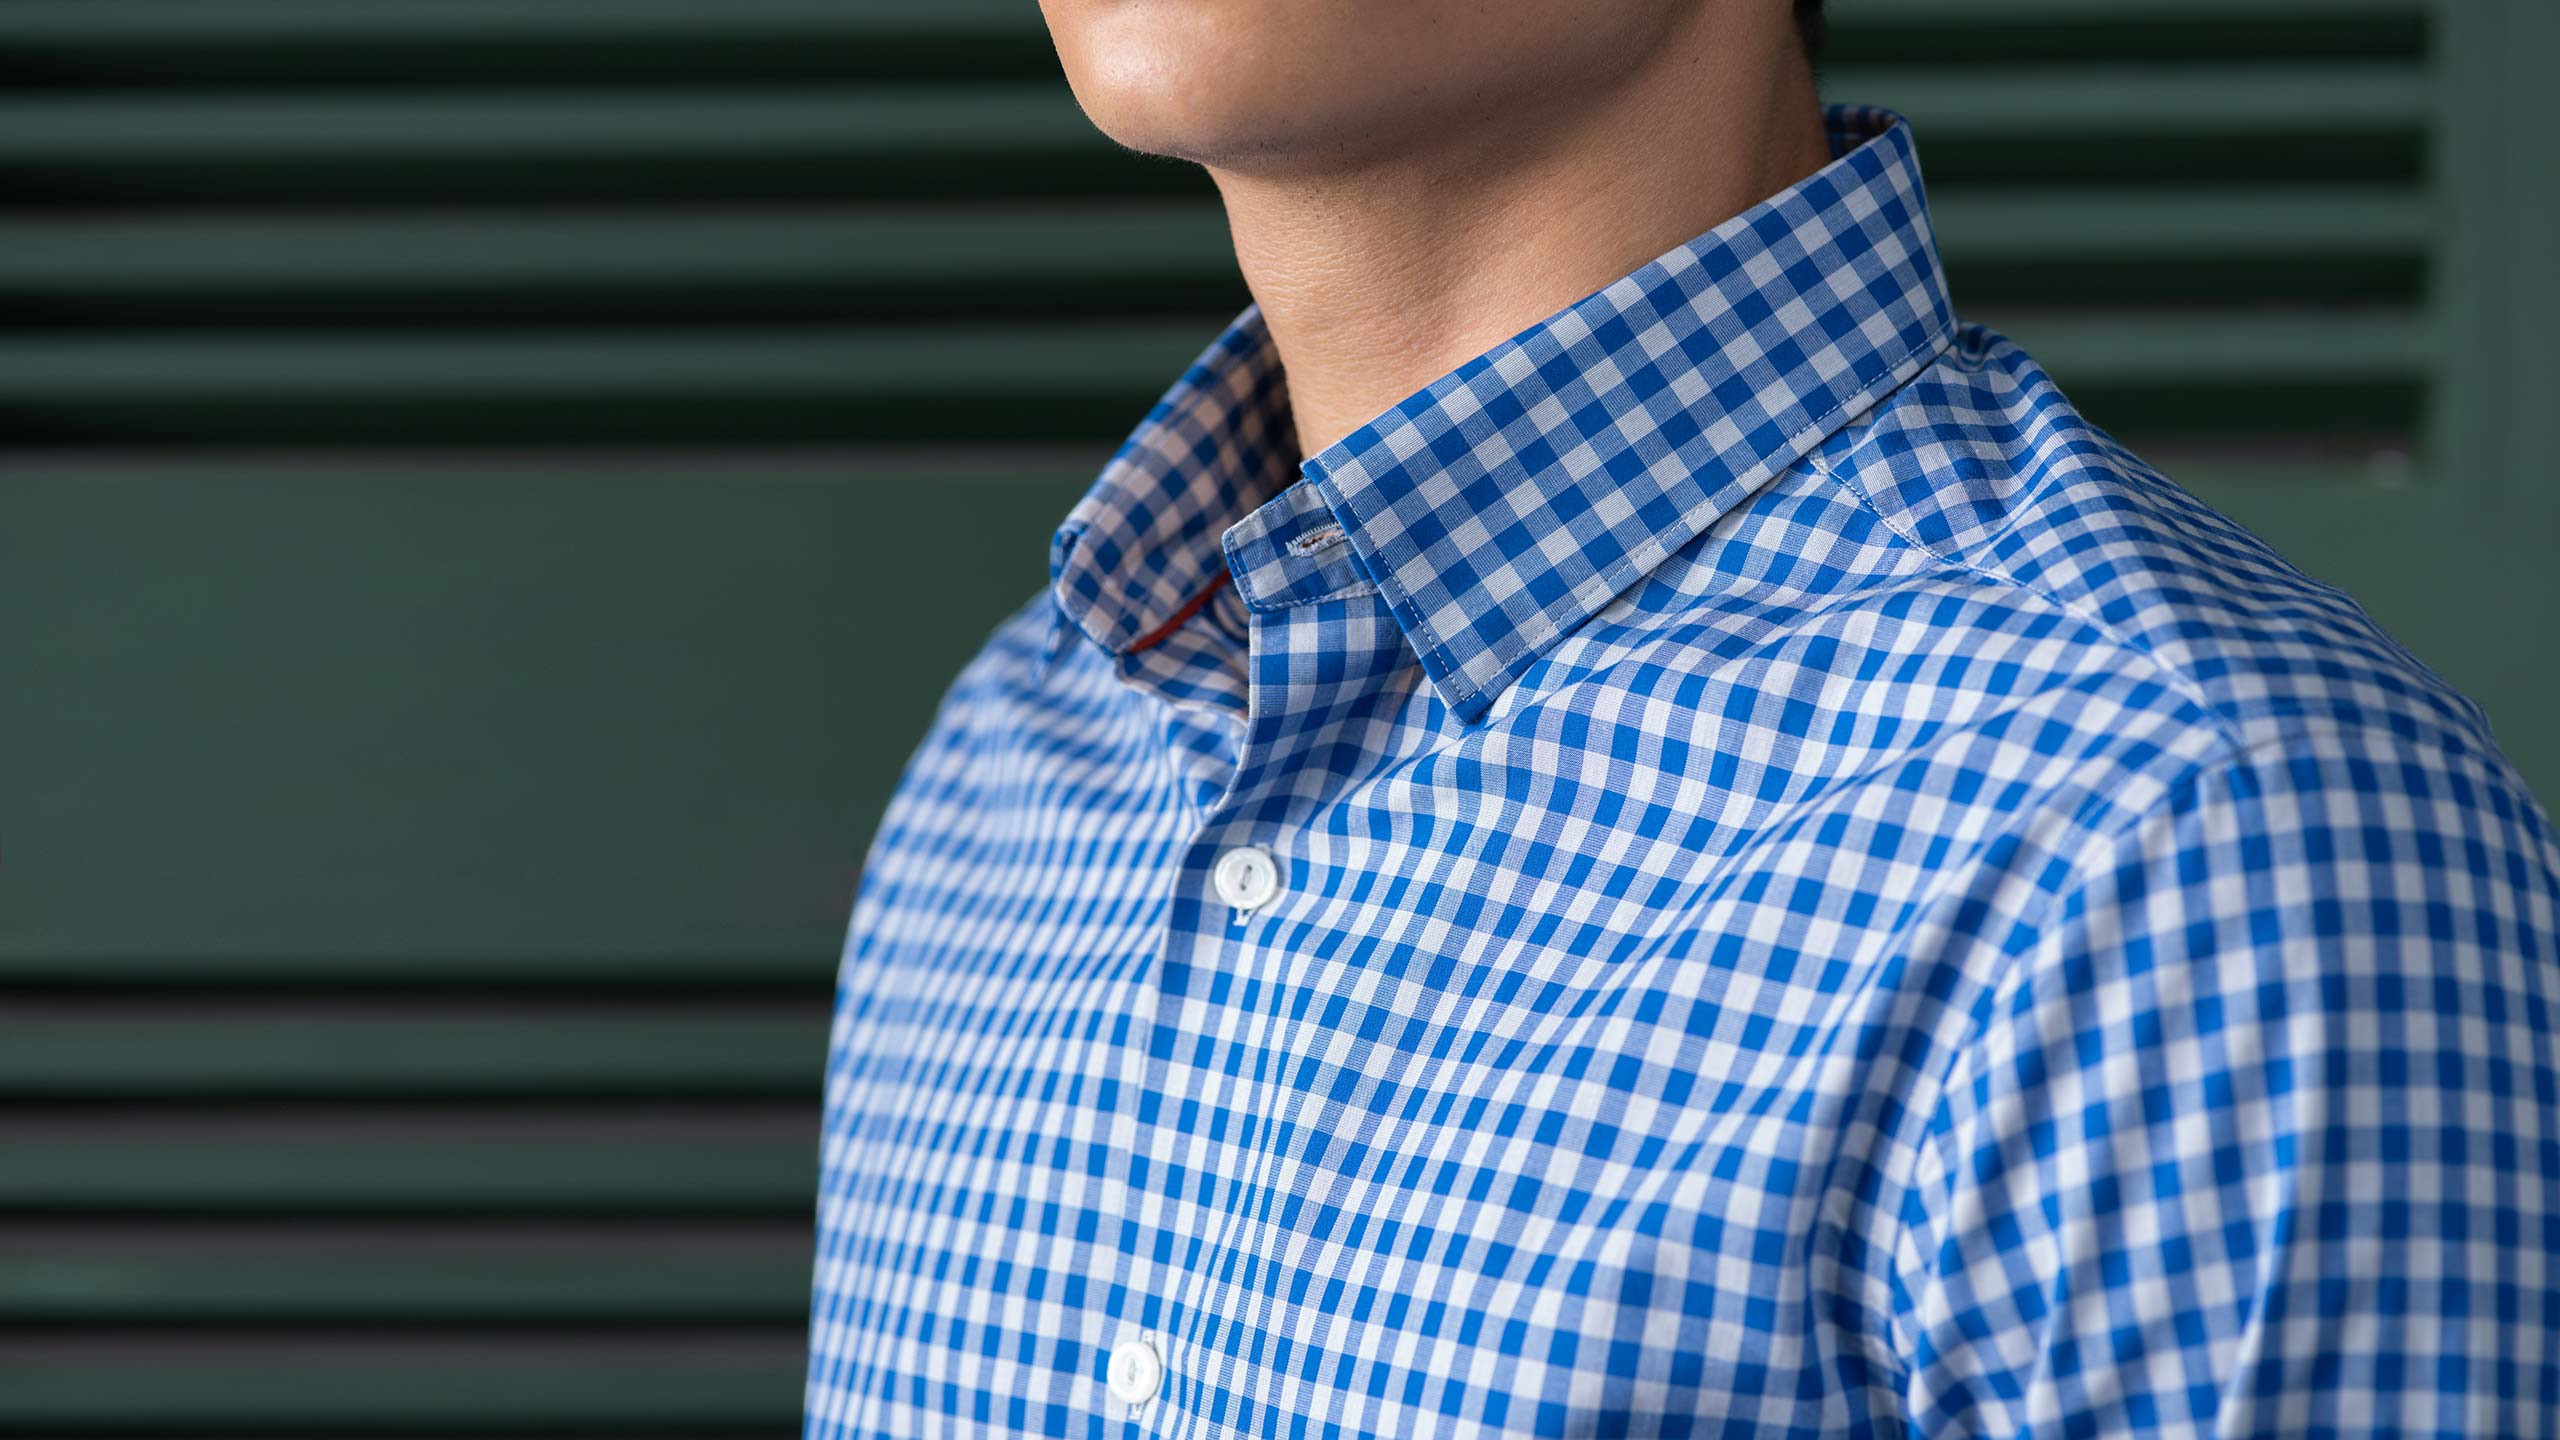 Buy Checkered Eve shirt online